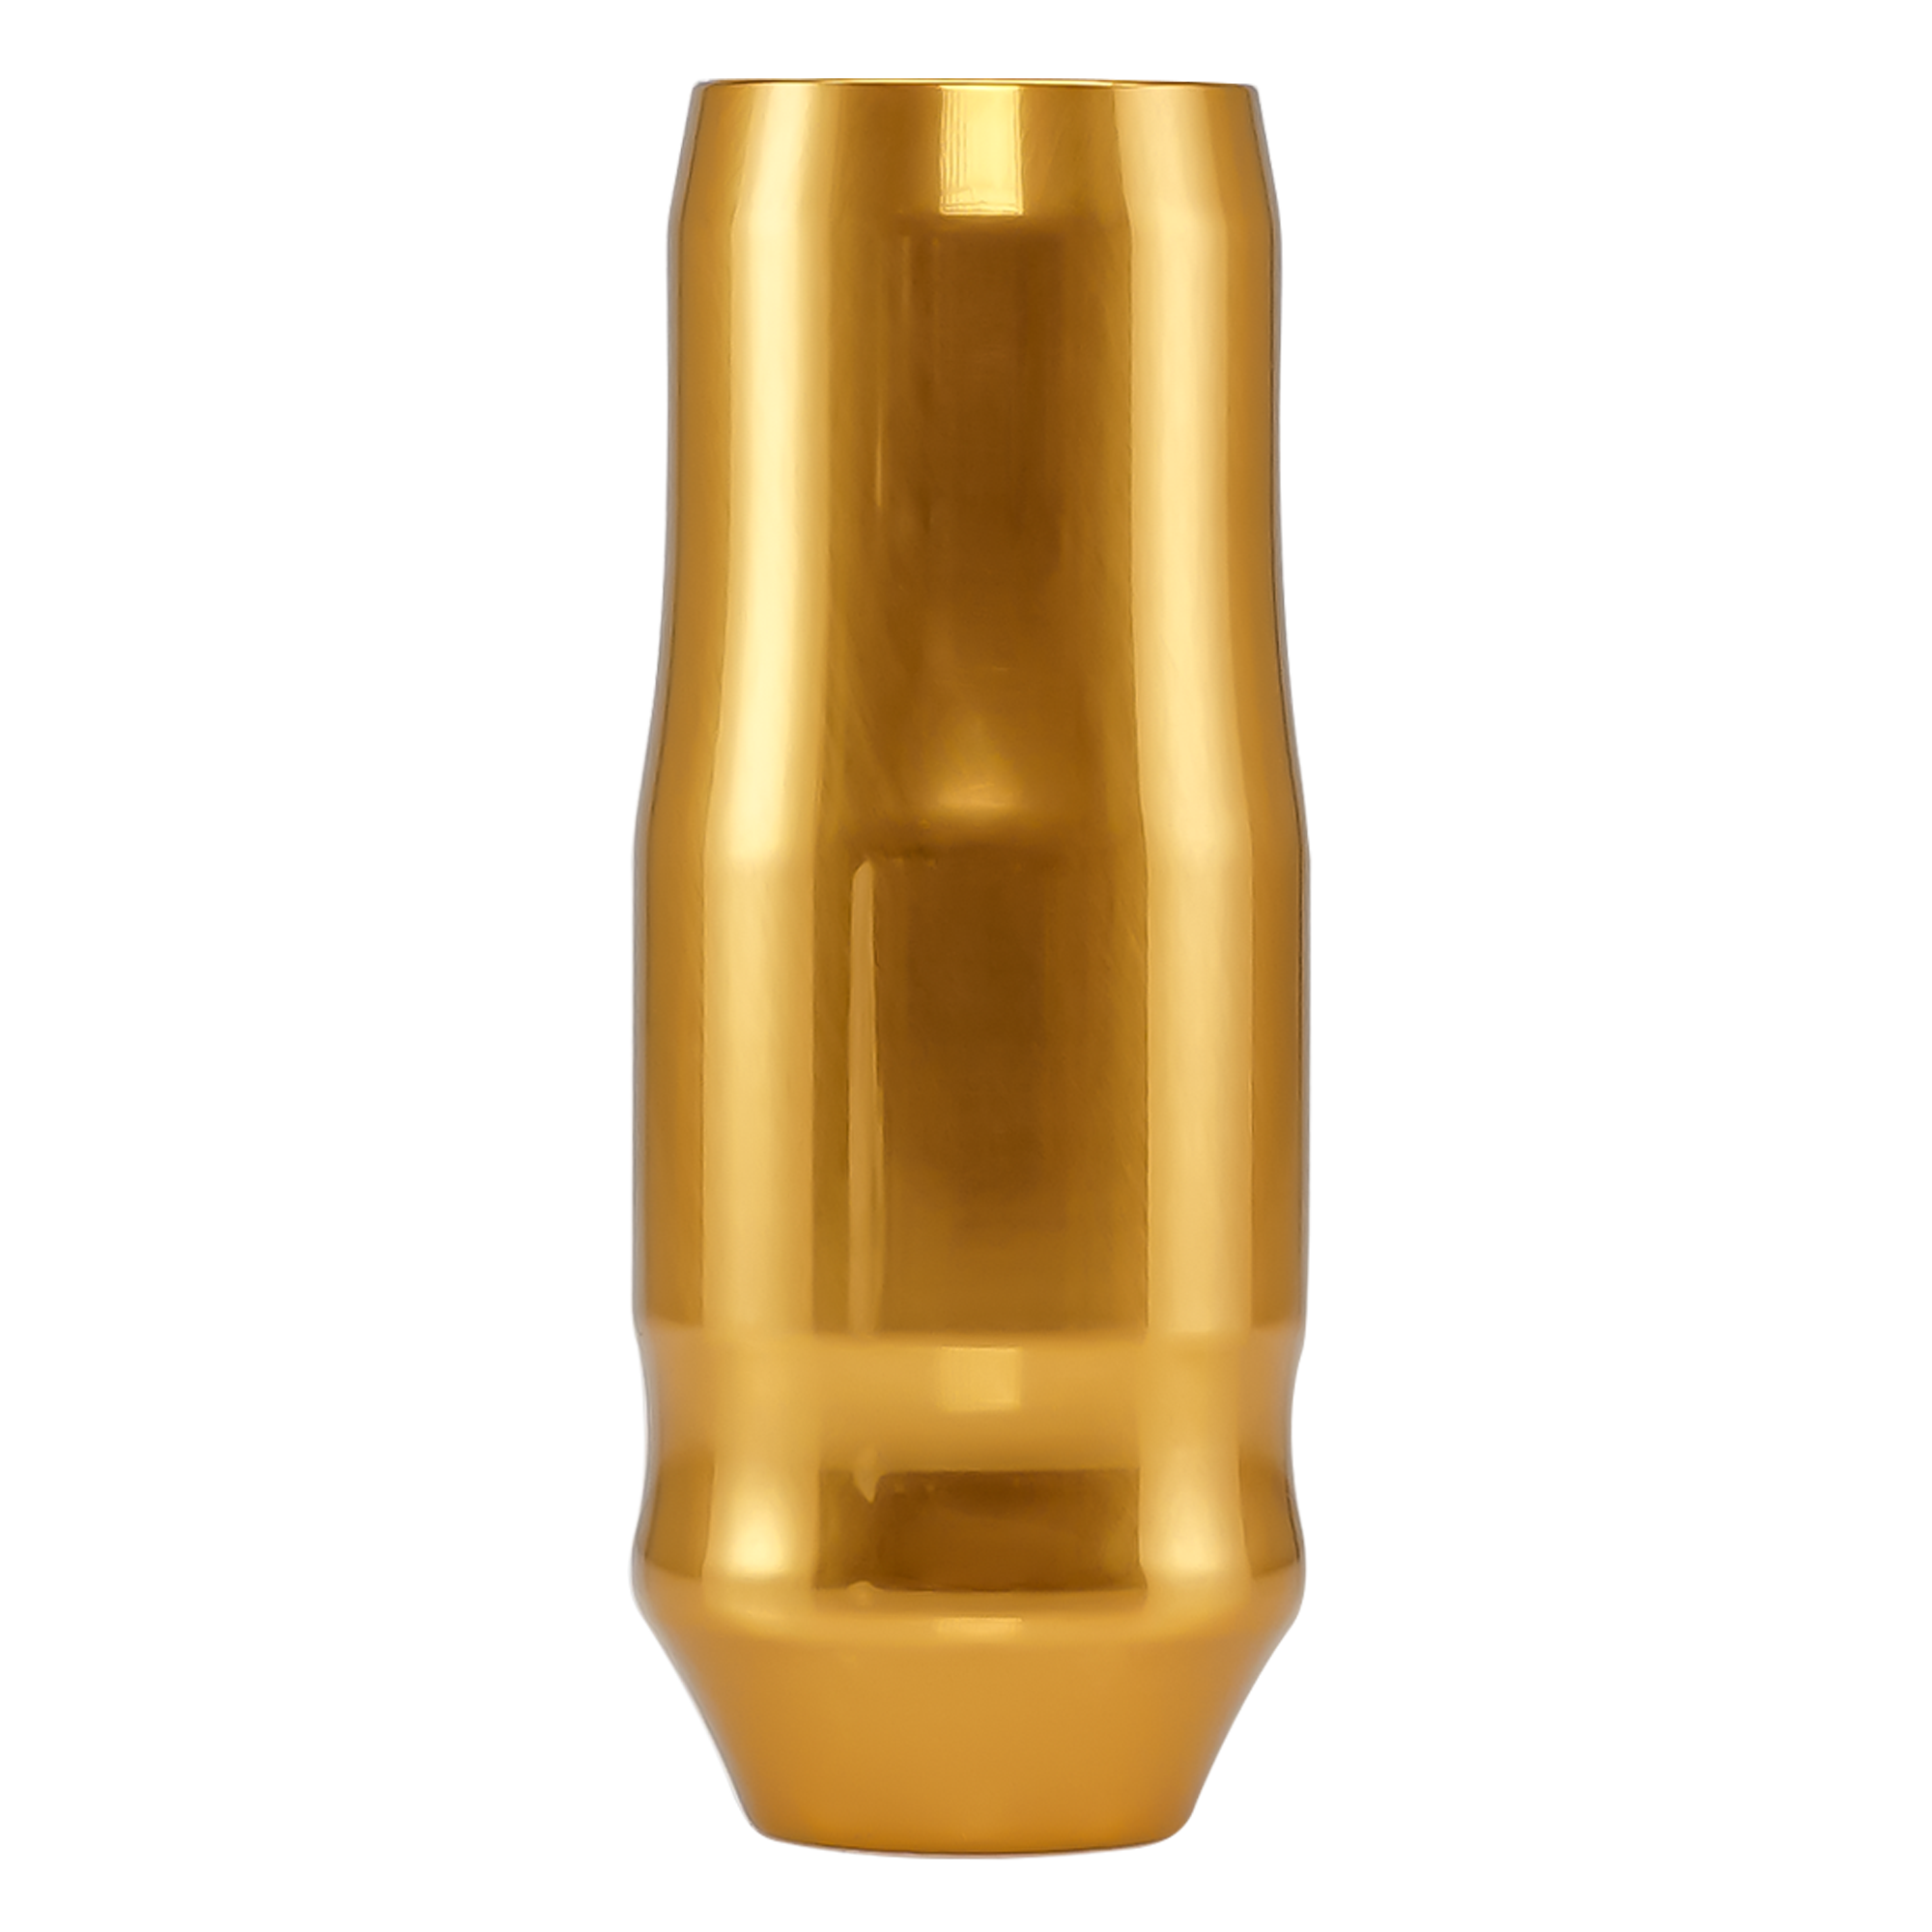 Apollo Grip Gold